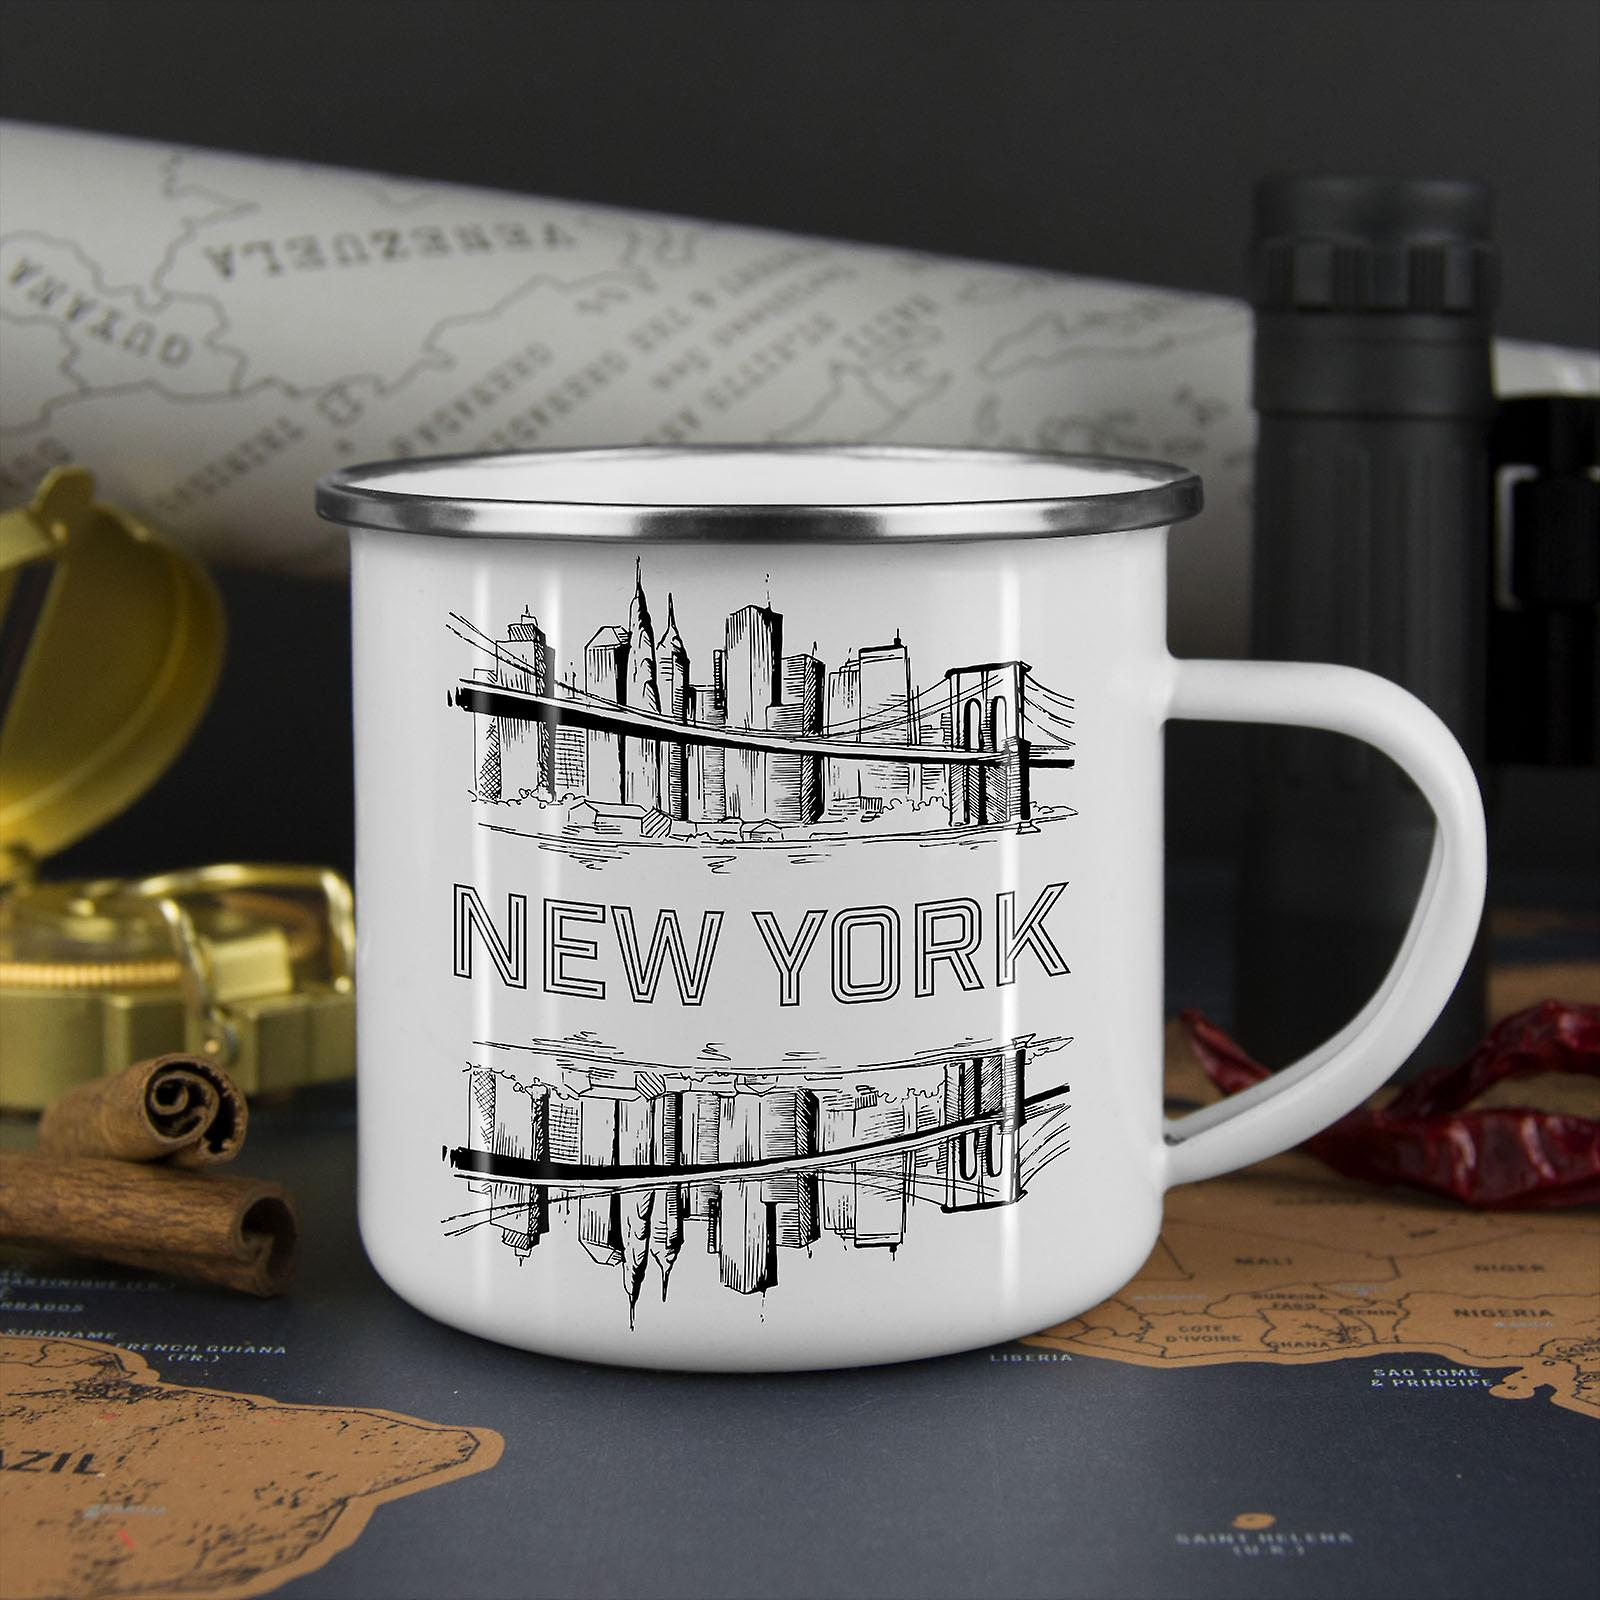 NY City Landschaft Mode neue WhiteTea Kaffee Emaille Mug10 oz | Wellcoda